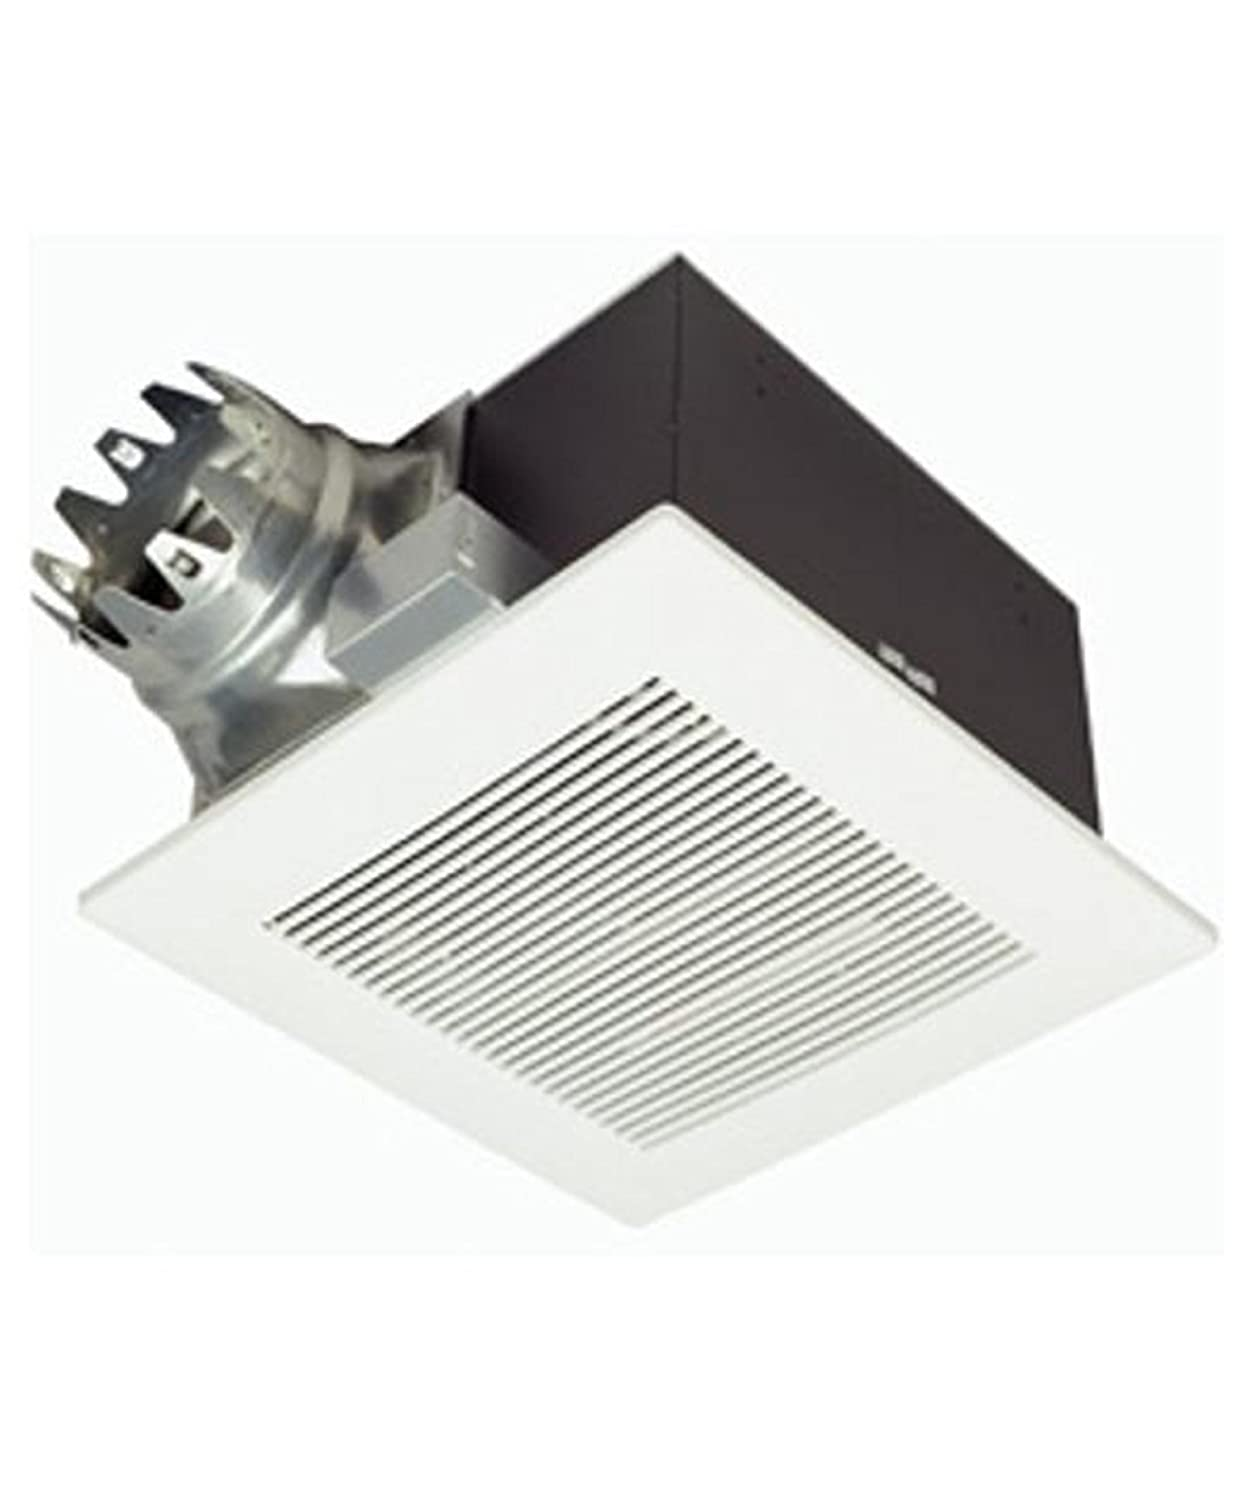 venting vent bathroom co the goose in cap neck home veloclub depot rooftop vents patrofi black roof